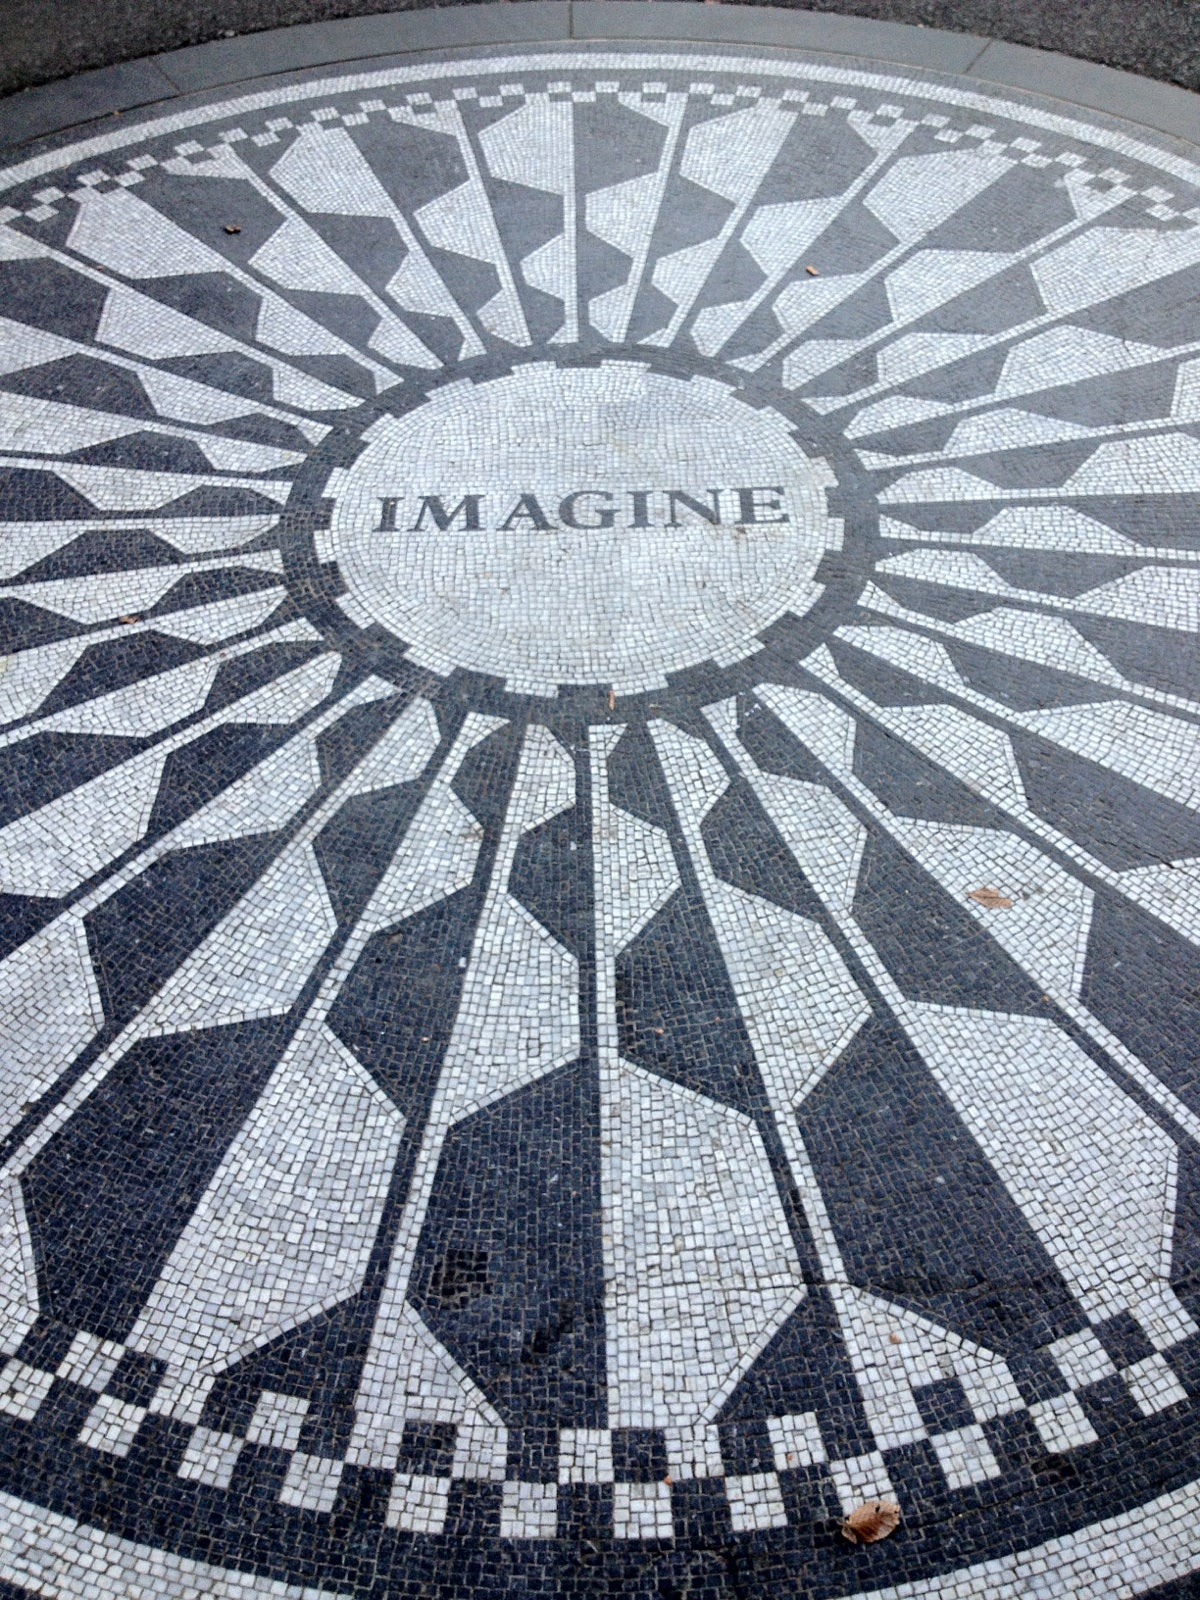 Círculo en Strawberry Fields - monumento a John Lennon